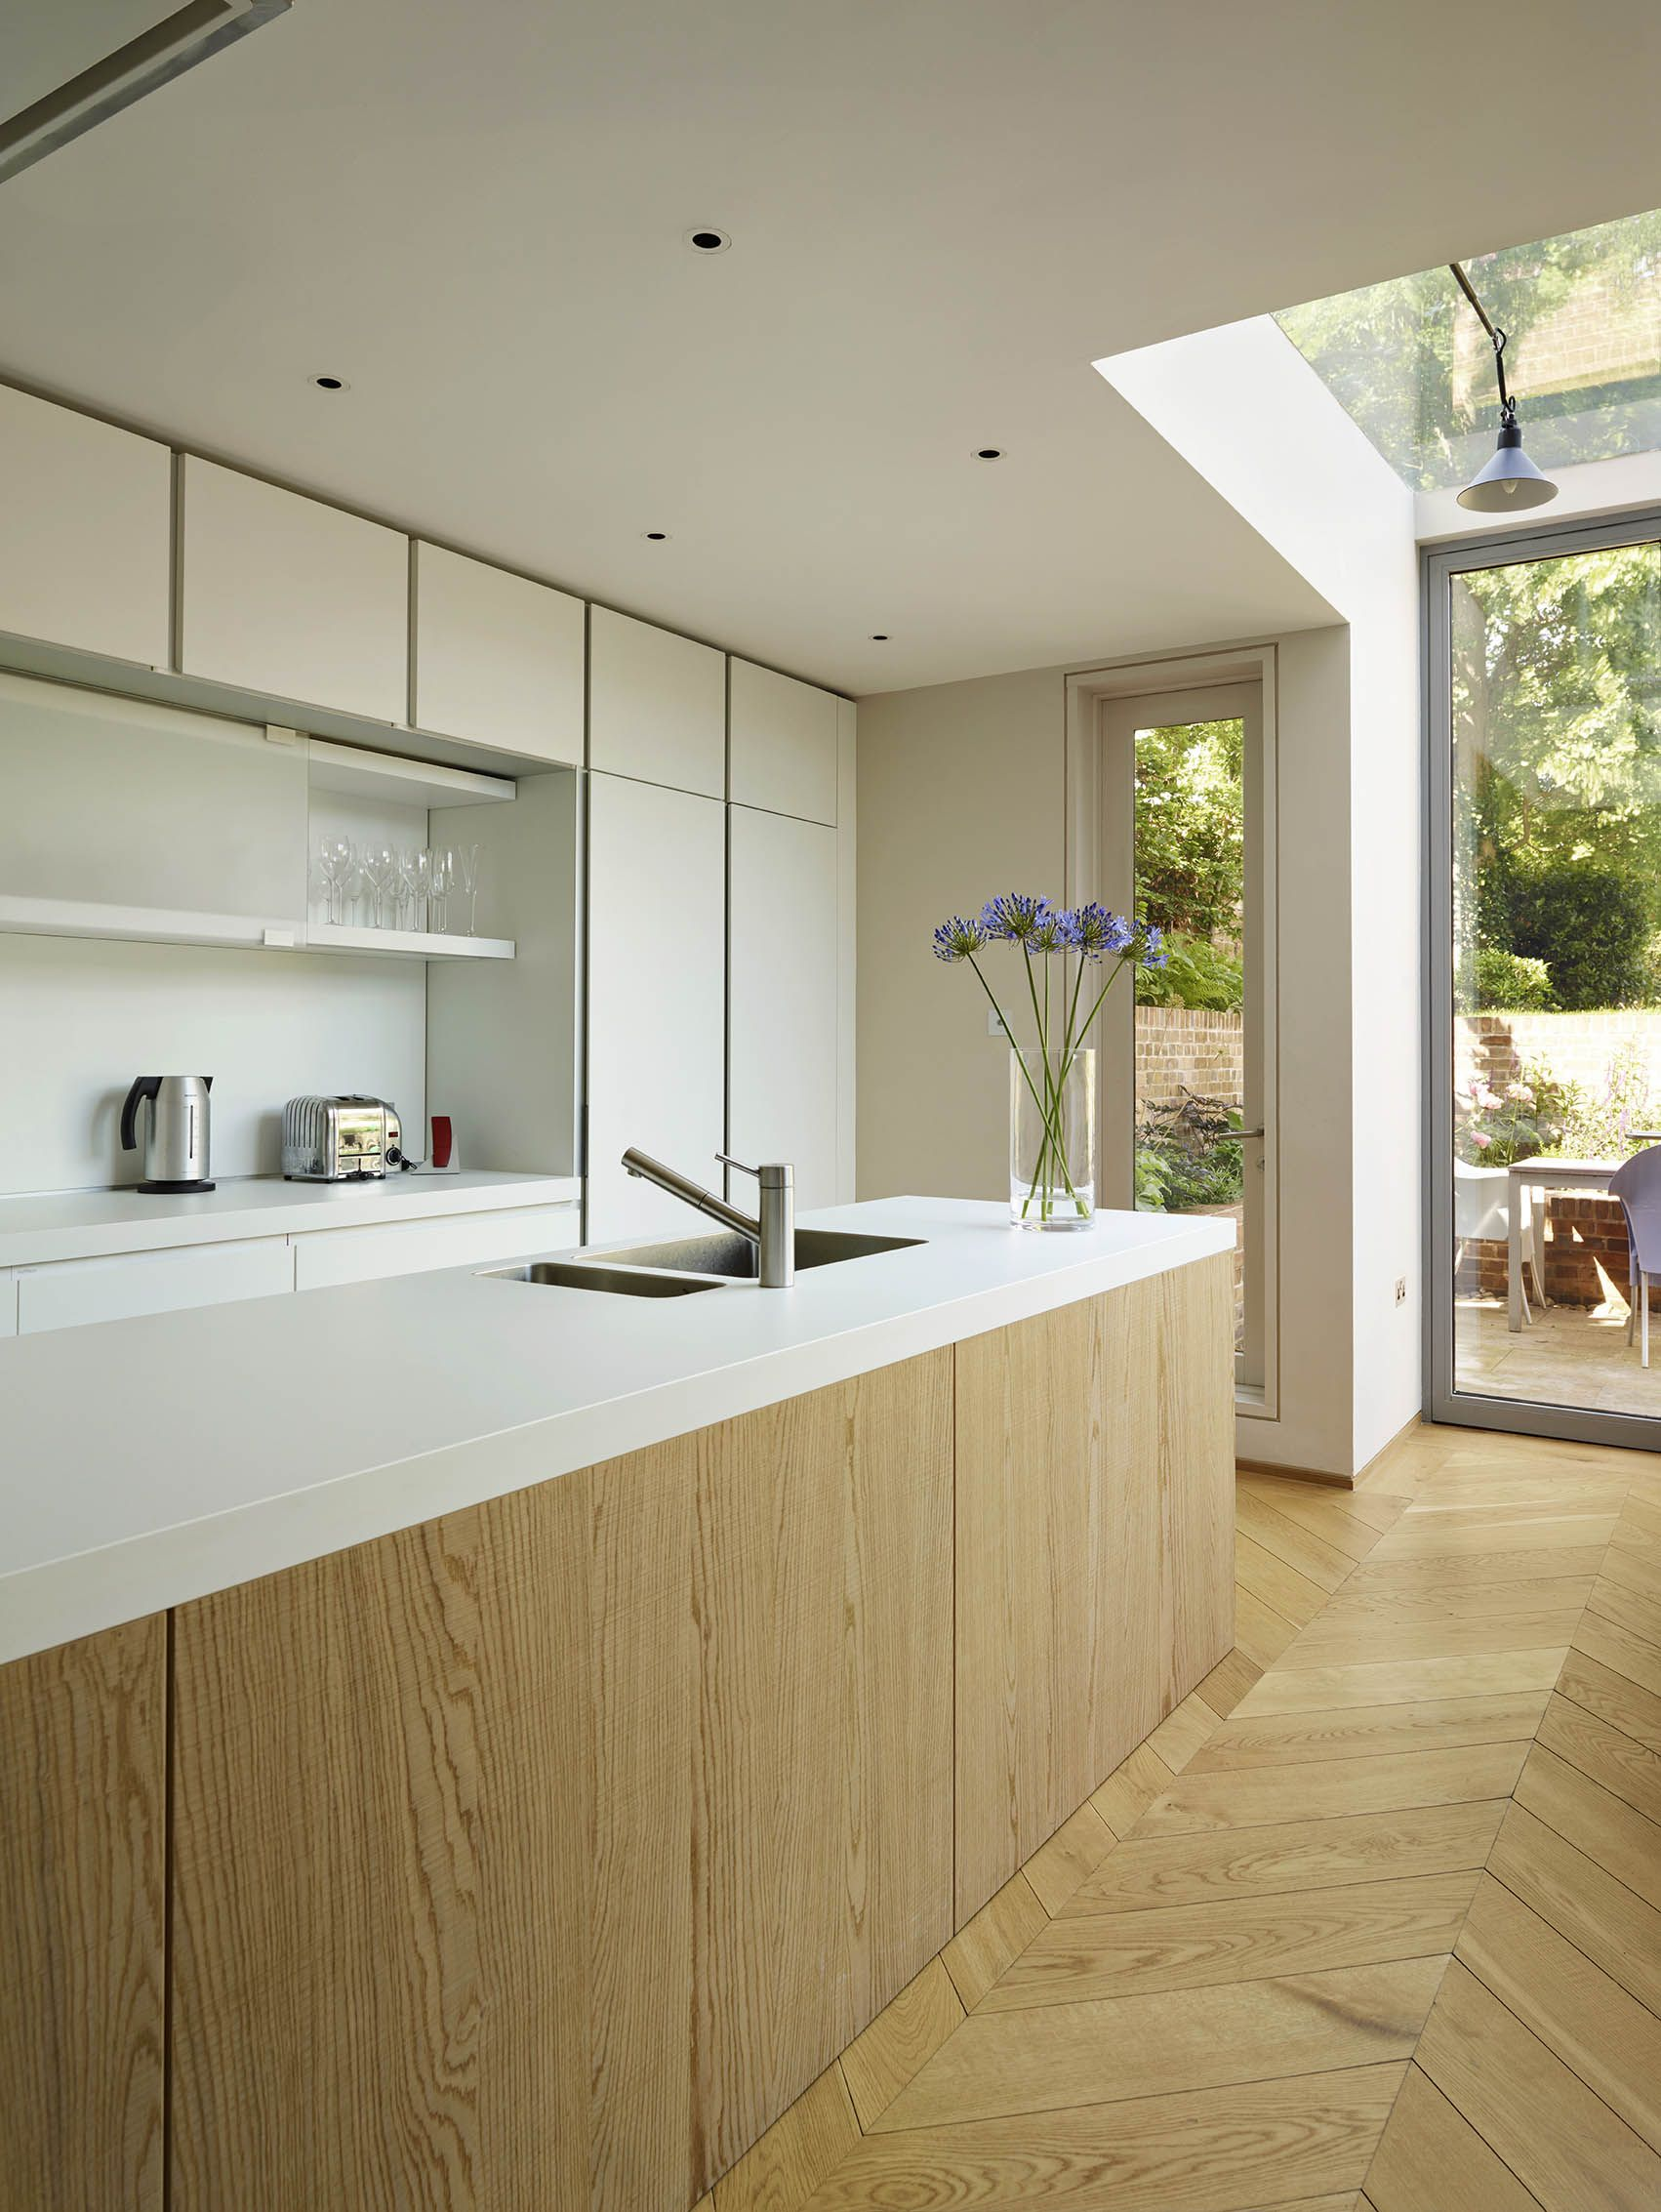 bulthaup by kitchen architecture kitchens pinterest beauty case design and study. Black Bedroom Furniture Sets. Home Design Ideas